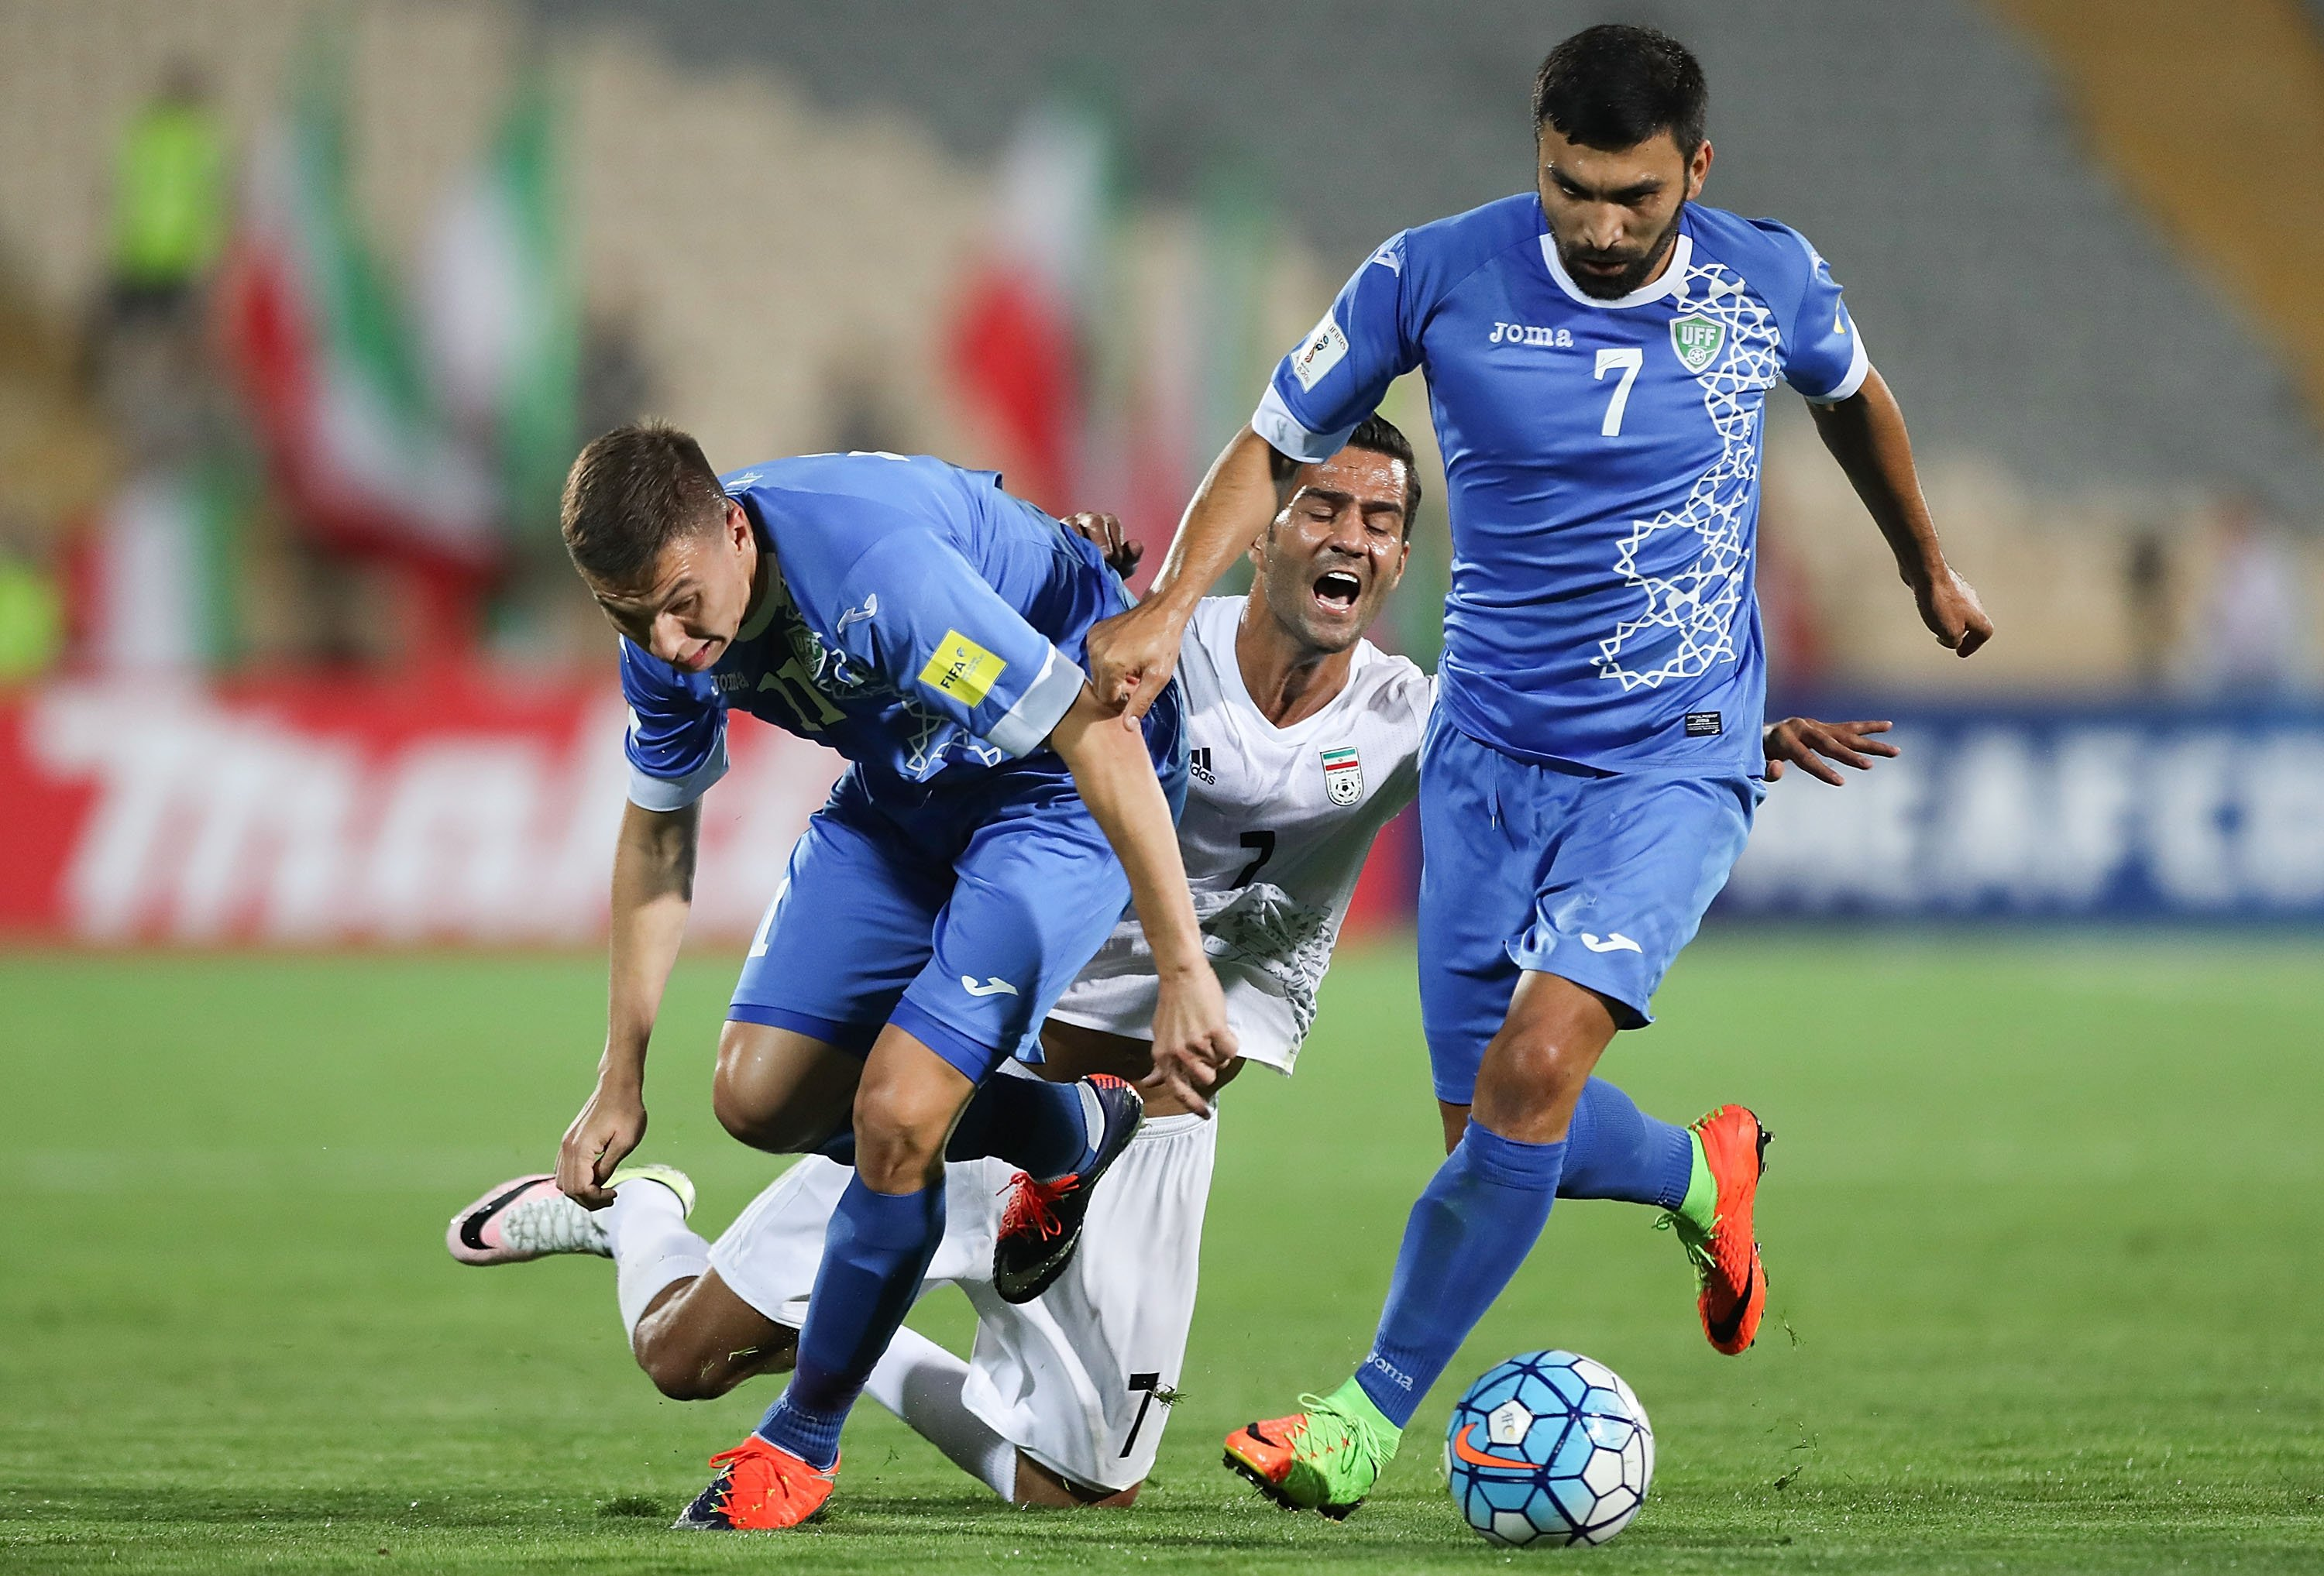 Iran Bans Two Soccer Players for Life After They Played Against Israeli Team